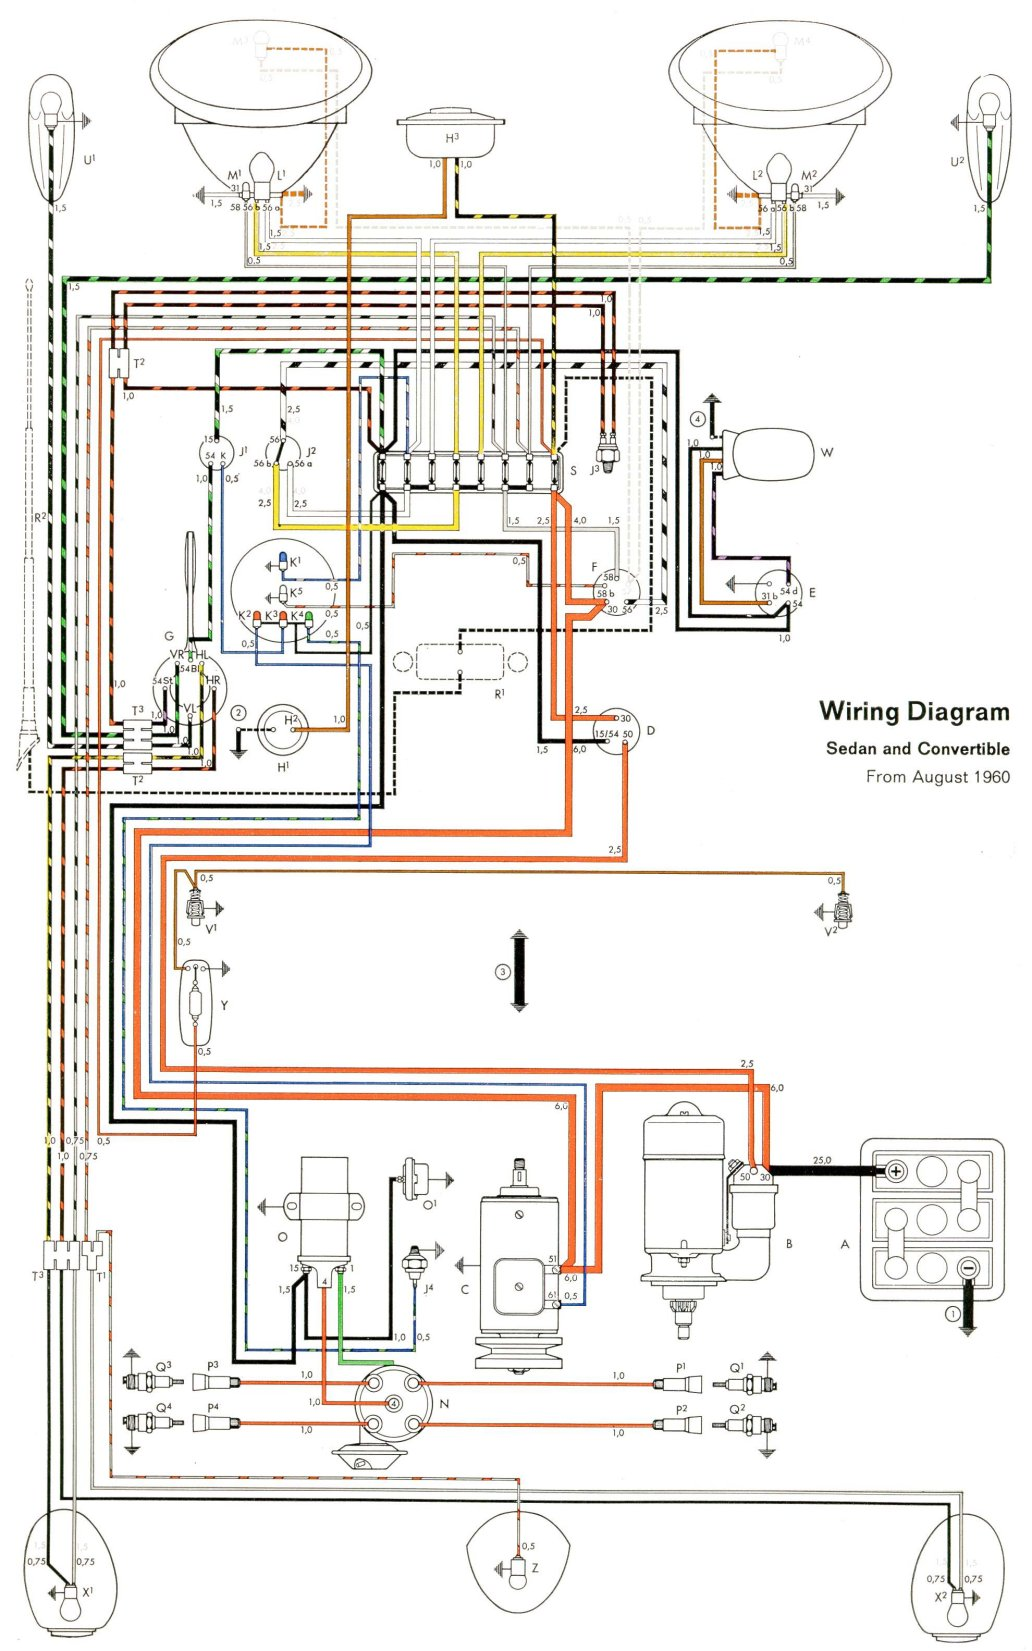 bug_61 thesamba com type 1 wiring diagrams vw wiring diagrams at webbmarketing.co